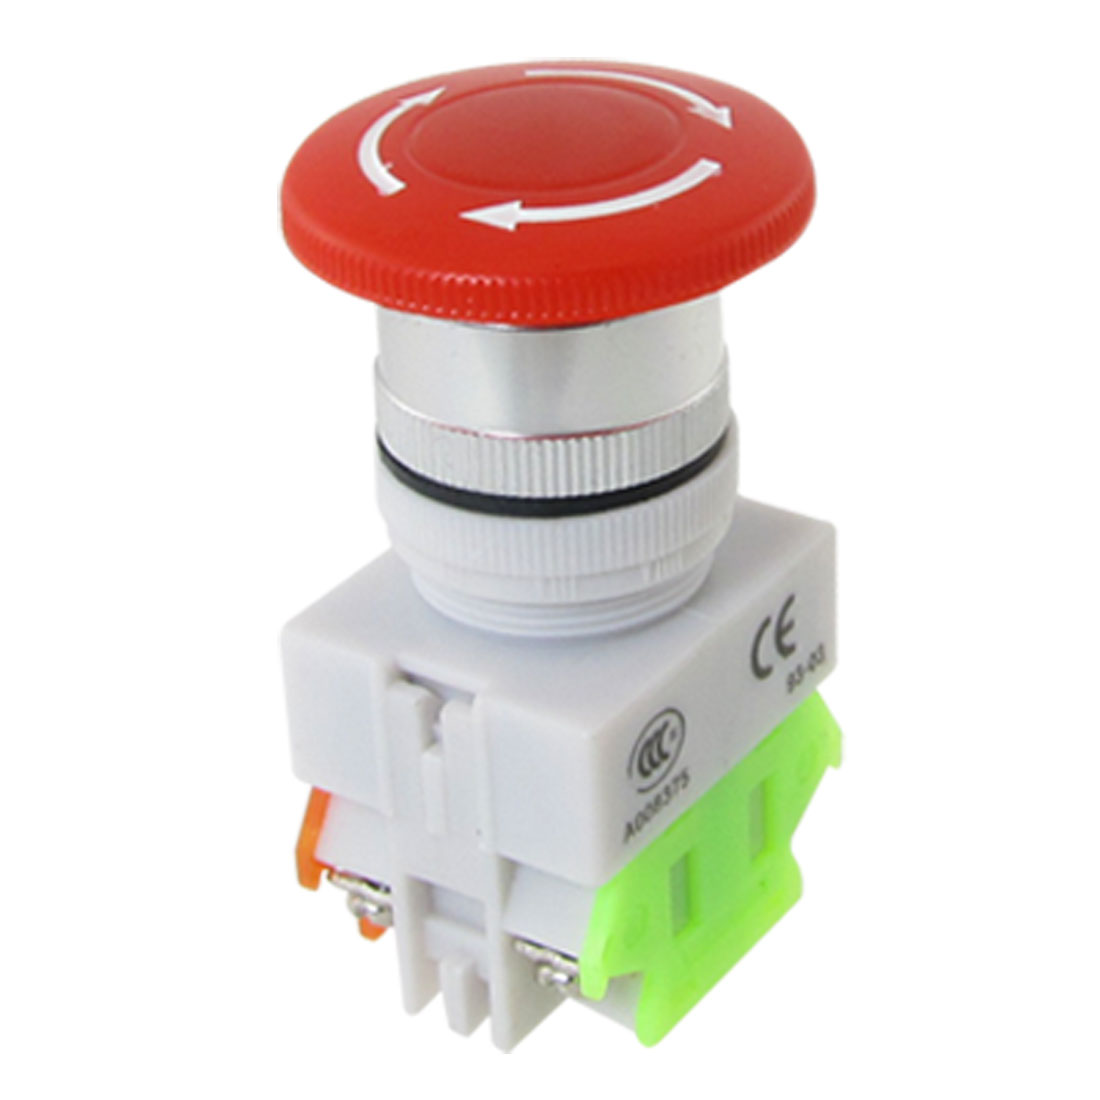 Red Mushroom Cap 1NO 1NC Emergency Stop Push Button Switch 600V 10A